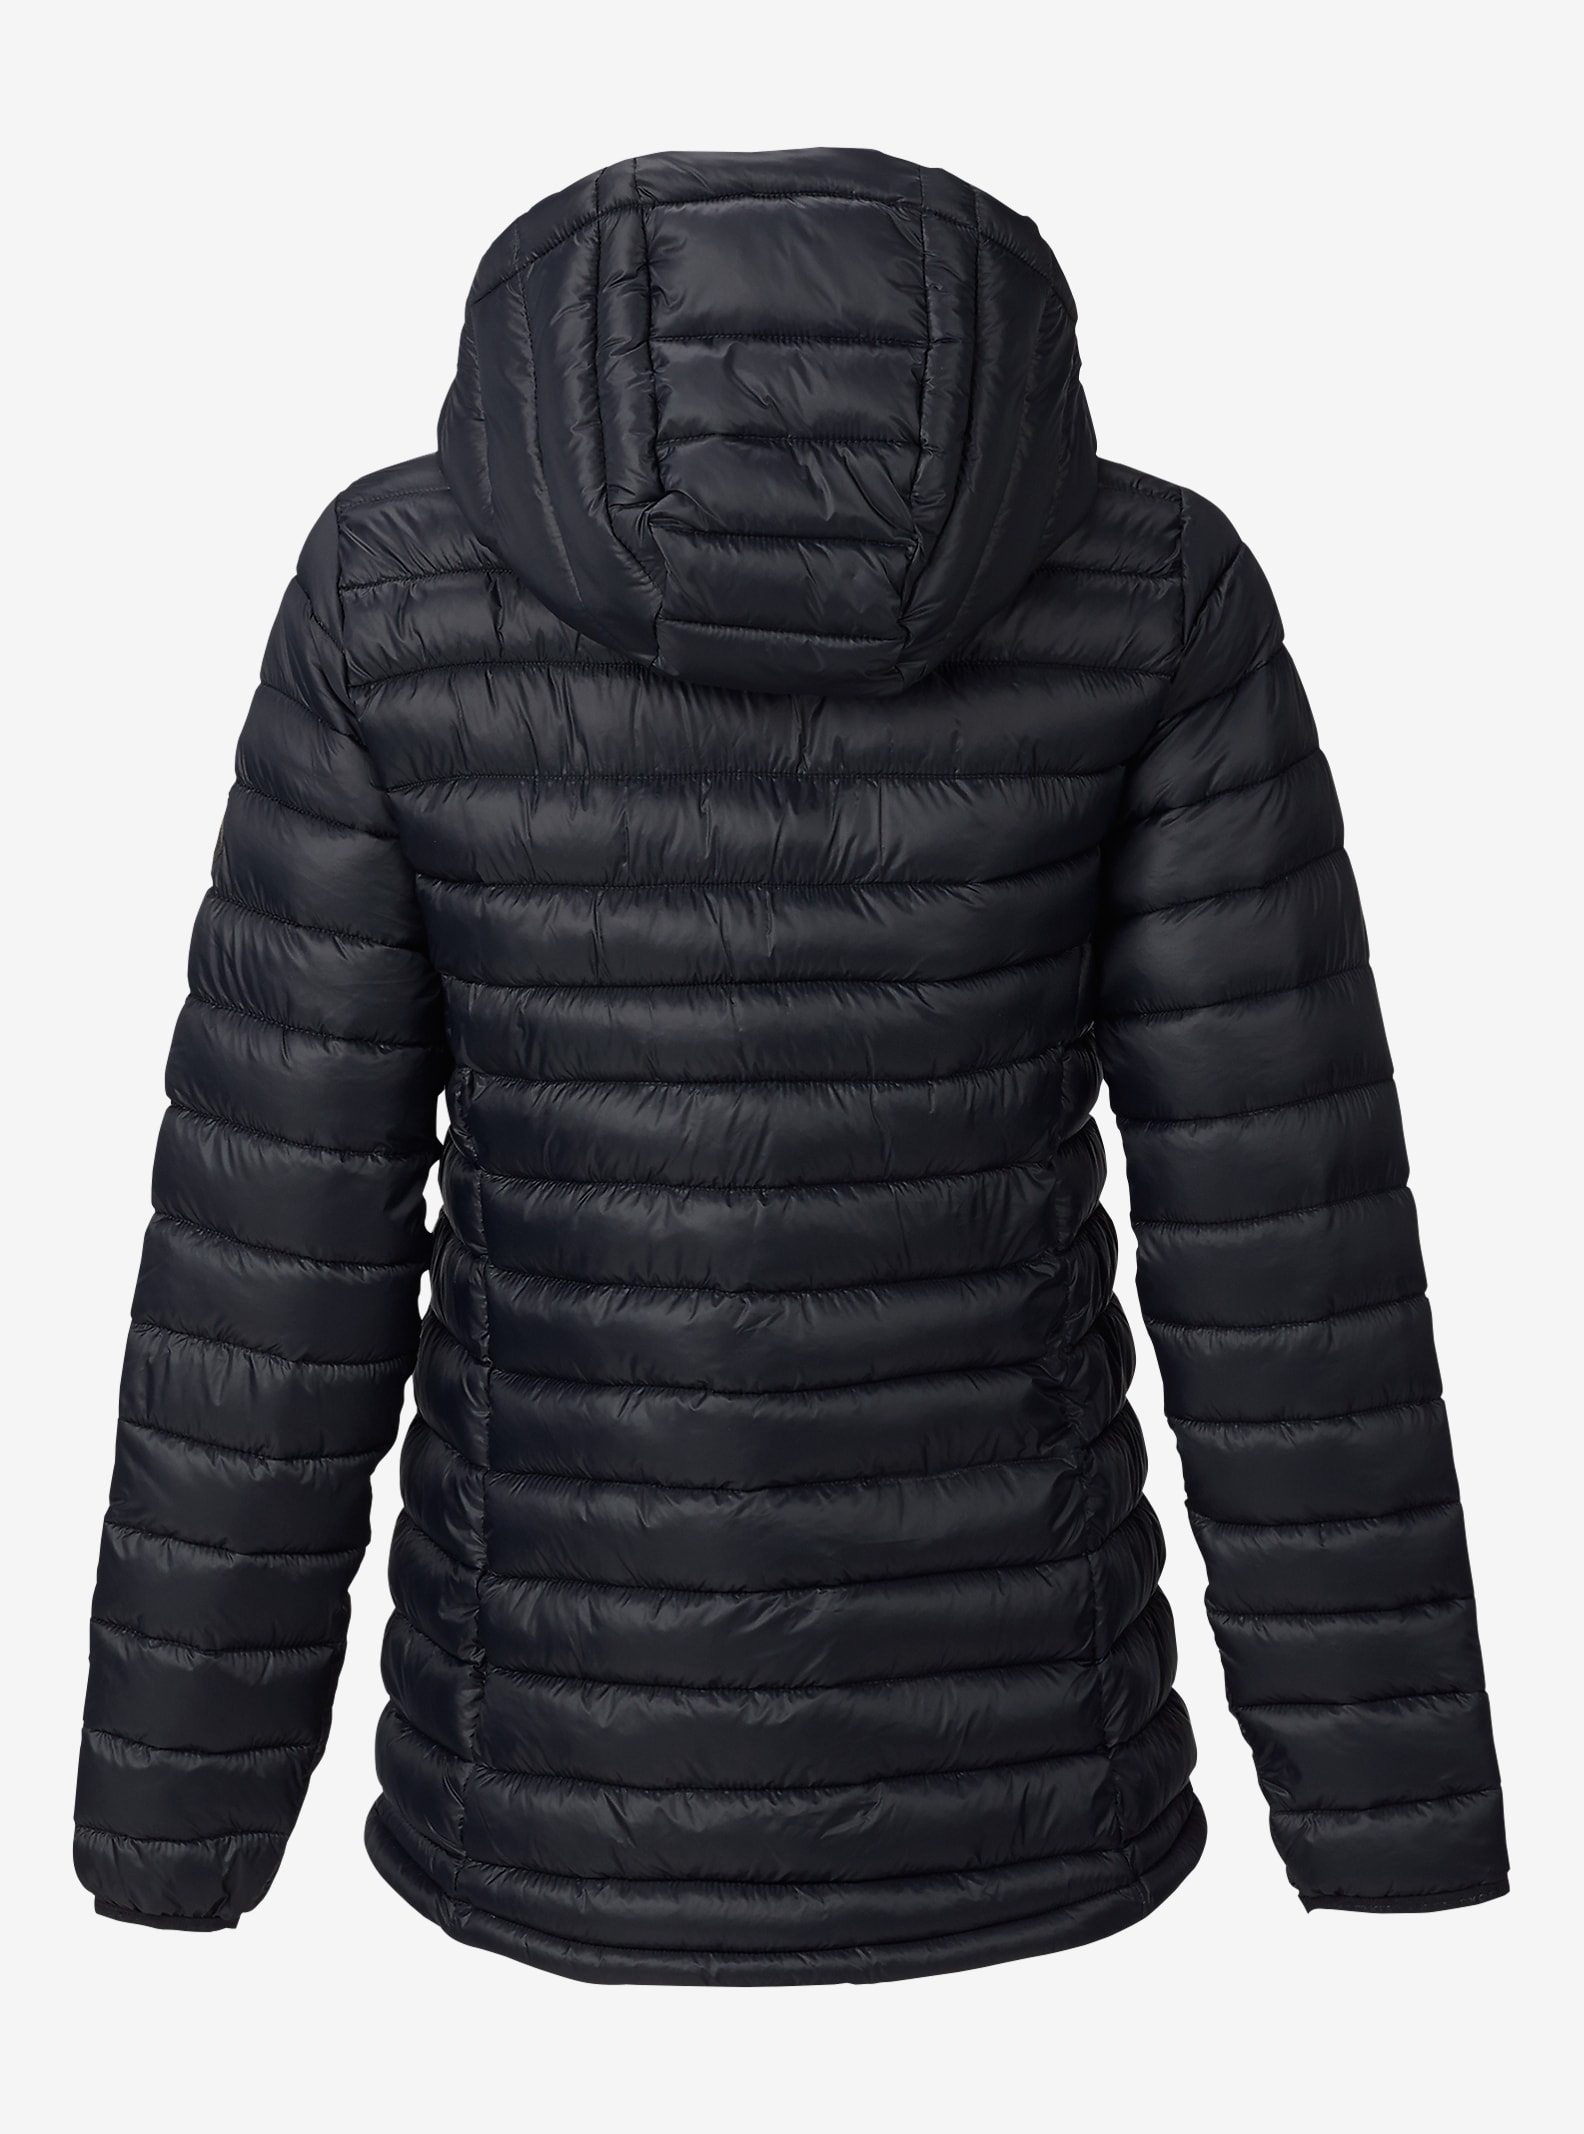 Burton Women's Evergreen Hooded Synthetic Insulator shown in True Black